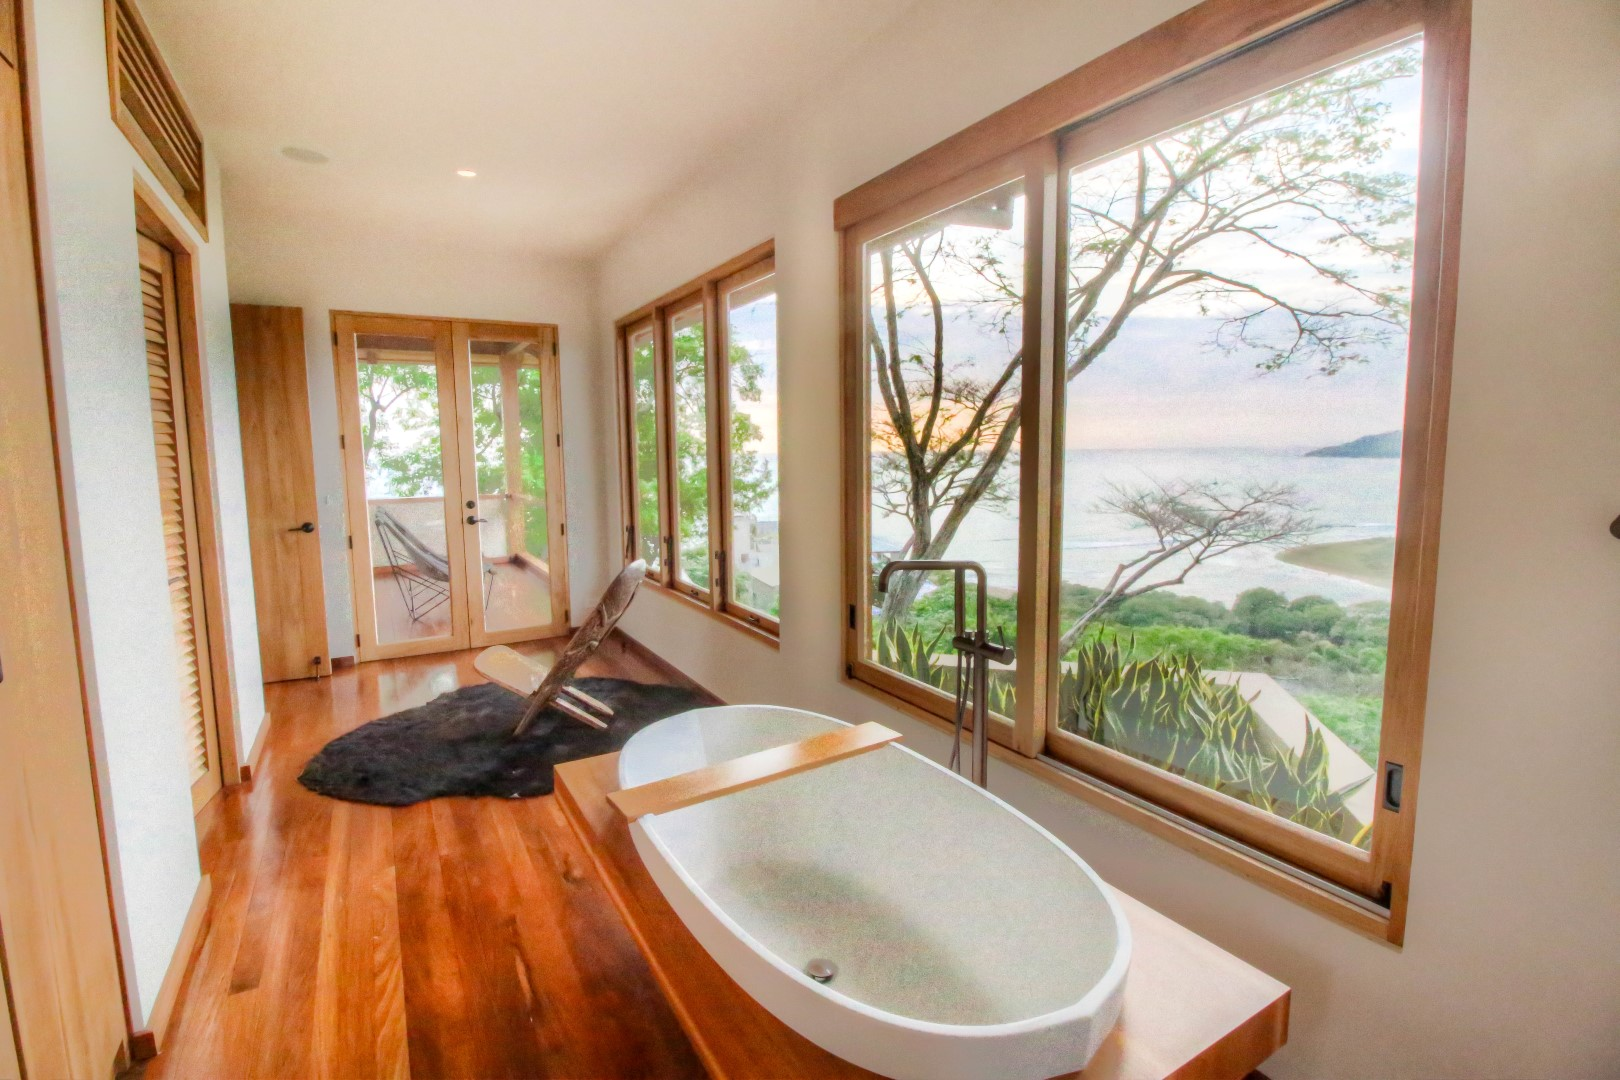 Tub with a view for those who enjoy long baths